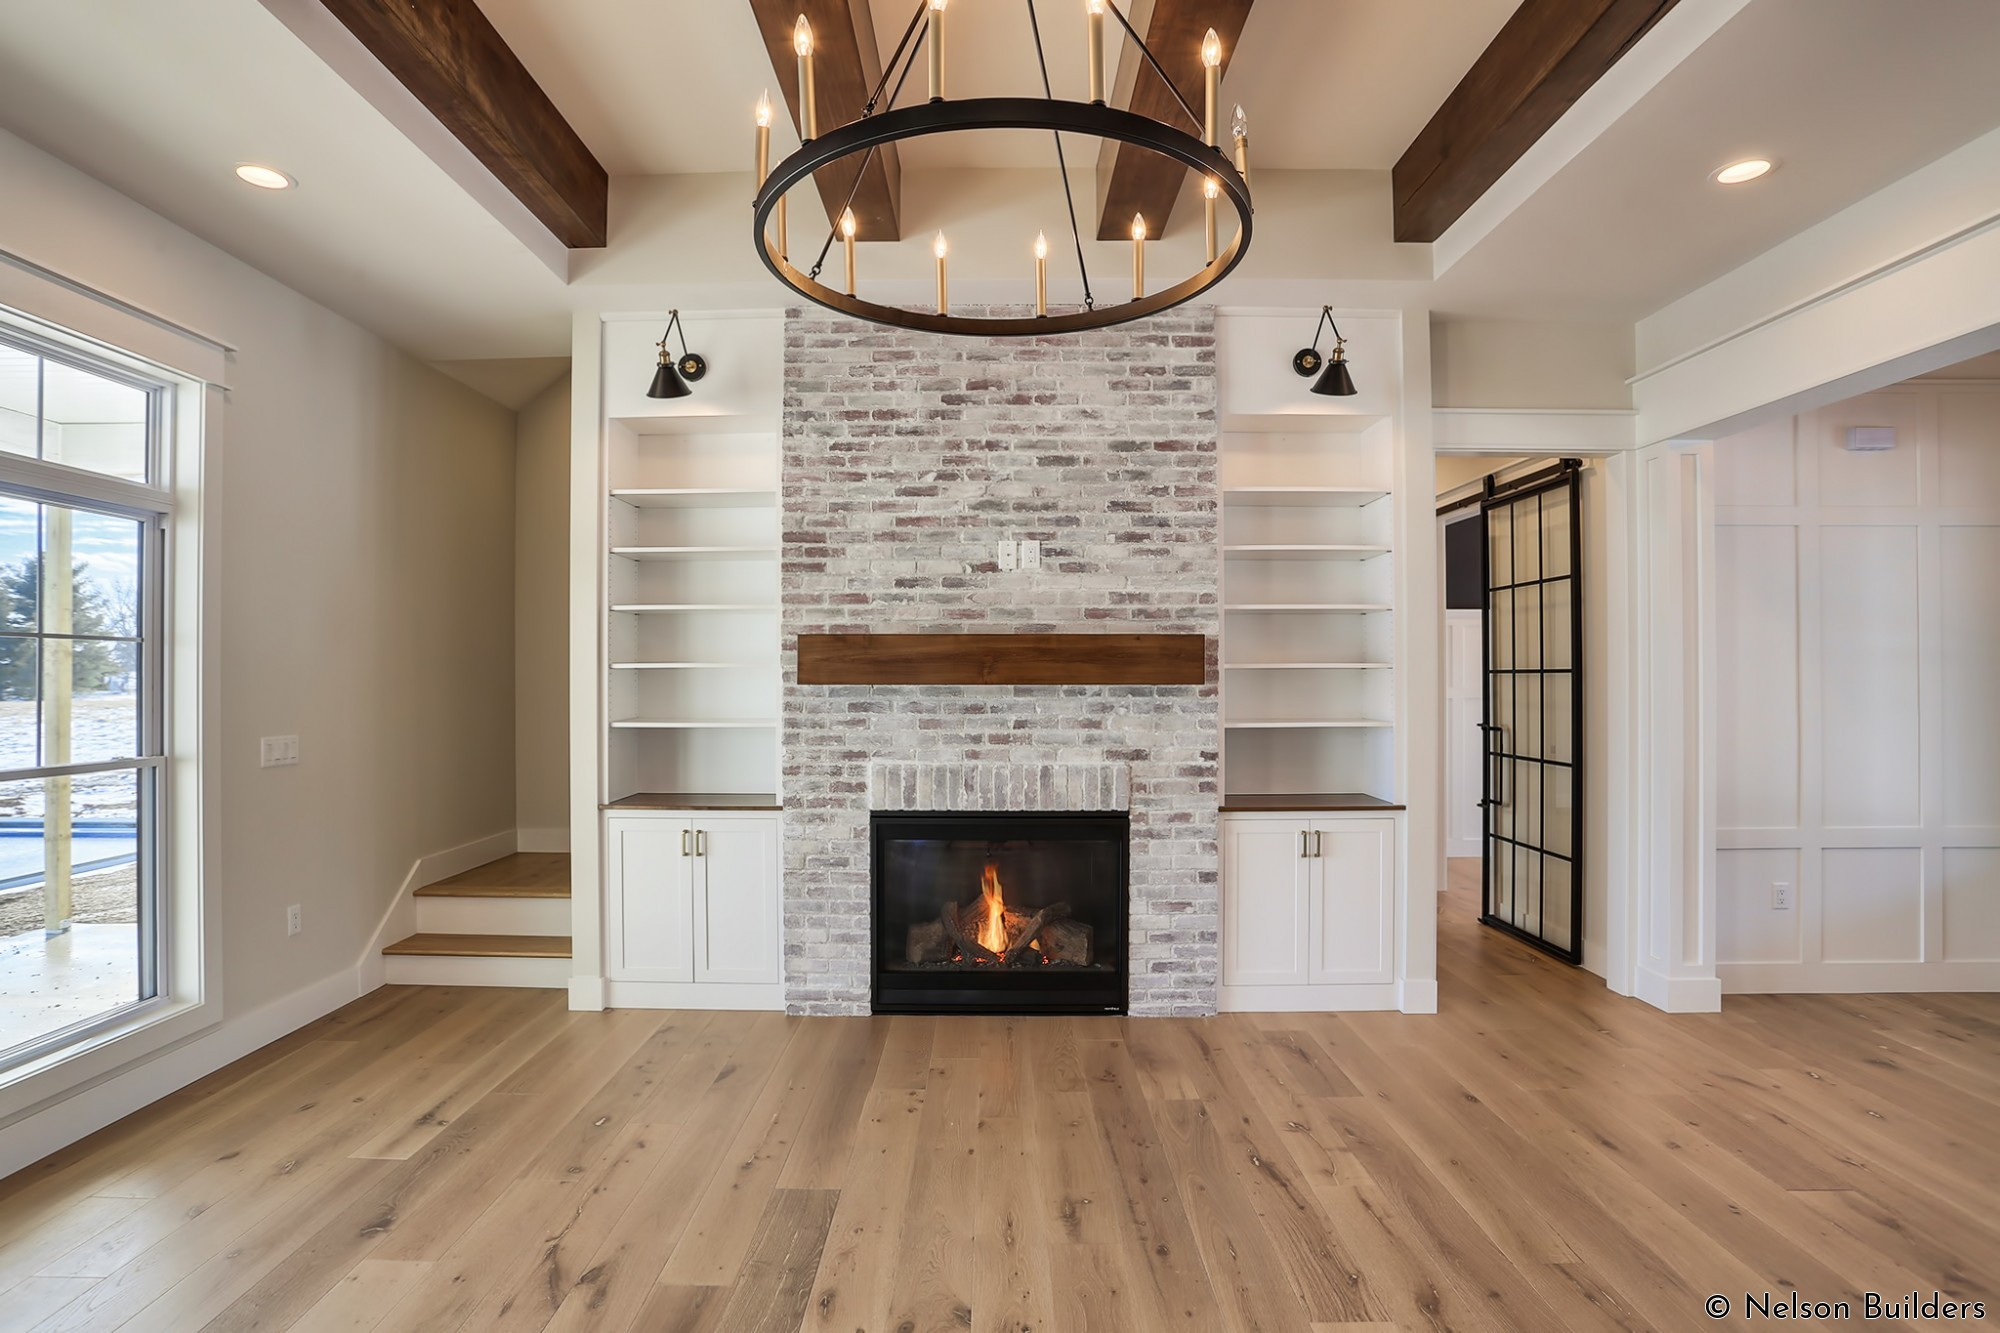 The great room of this custom home is flanked with glass on both sides, a brick fireplace focal point, and wood beams in the ceiling.